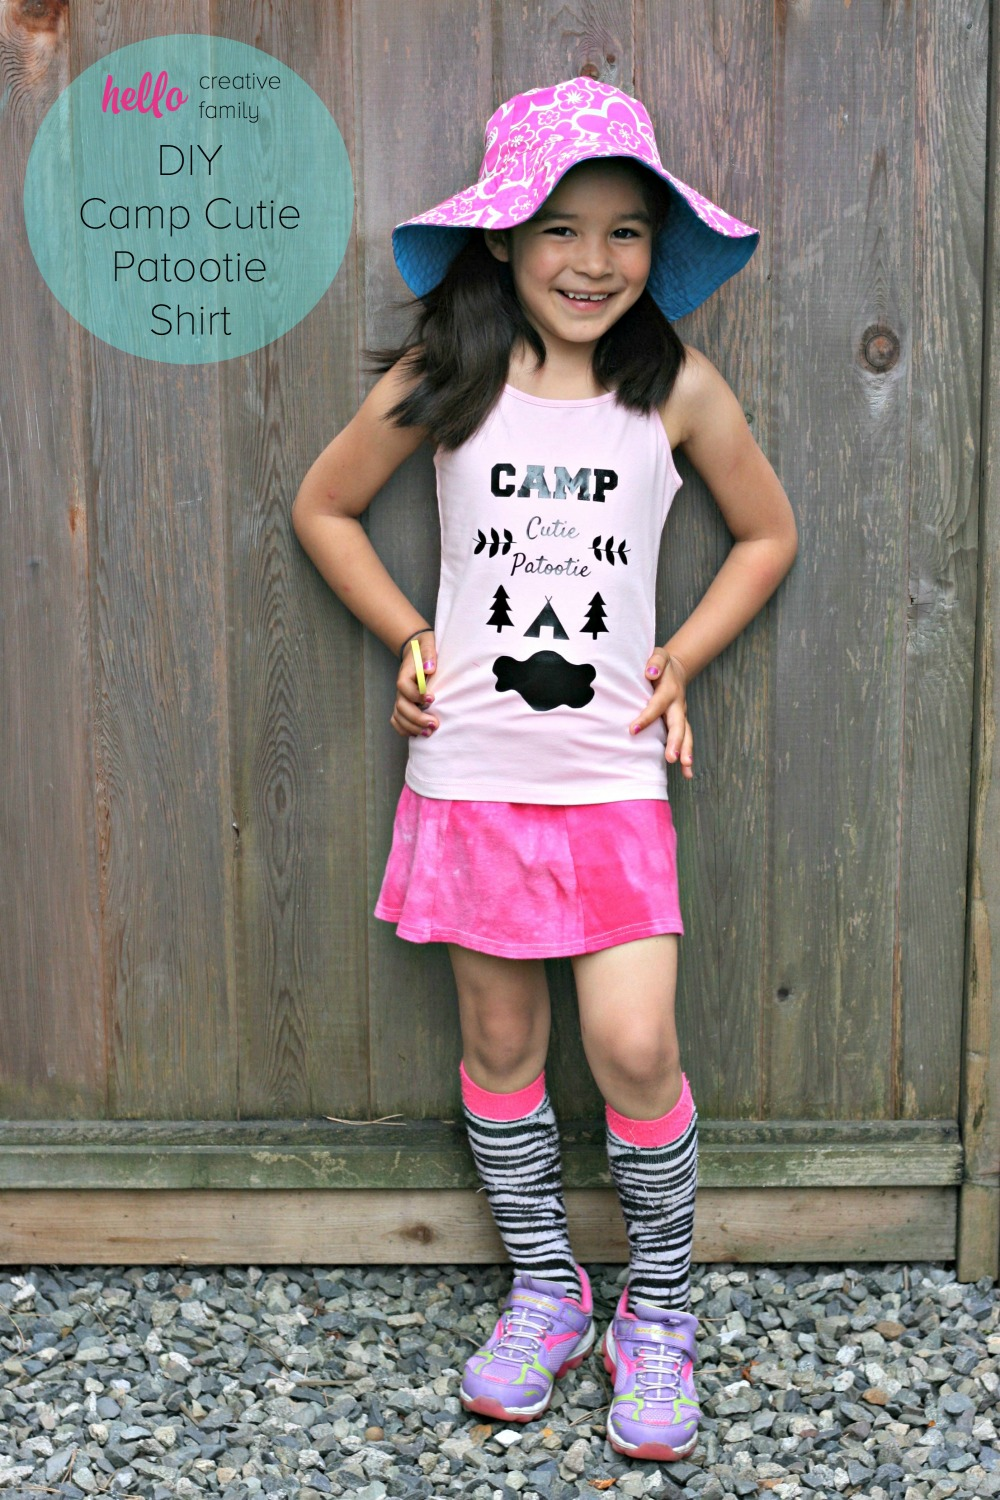 Send your little camper off to summer camp in style with a DIY Camp Cutie Patootie tank top or tshirt. Cut file included so you can make this project on the Cricut Explore.Send your little camper off to summer camp in style with a DIY Camp Cutie Patootie tank top or tshirt. Cut file included so you can make this project on the Cricut Explore.